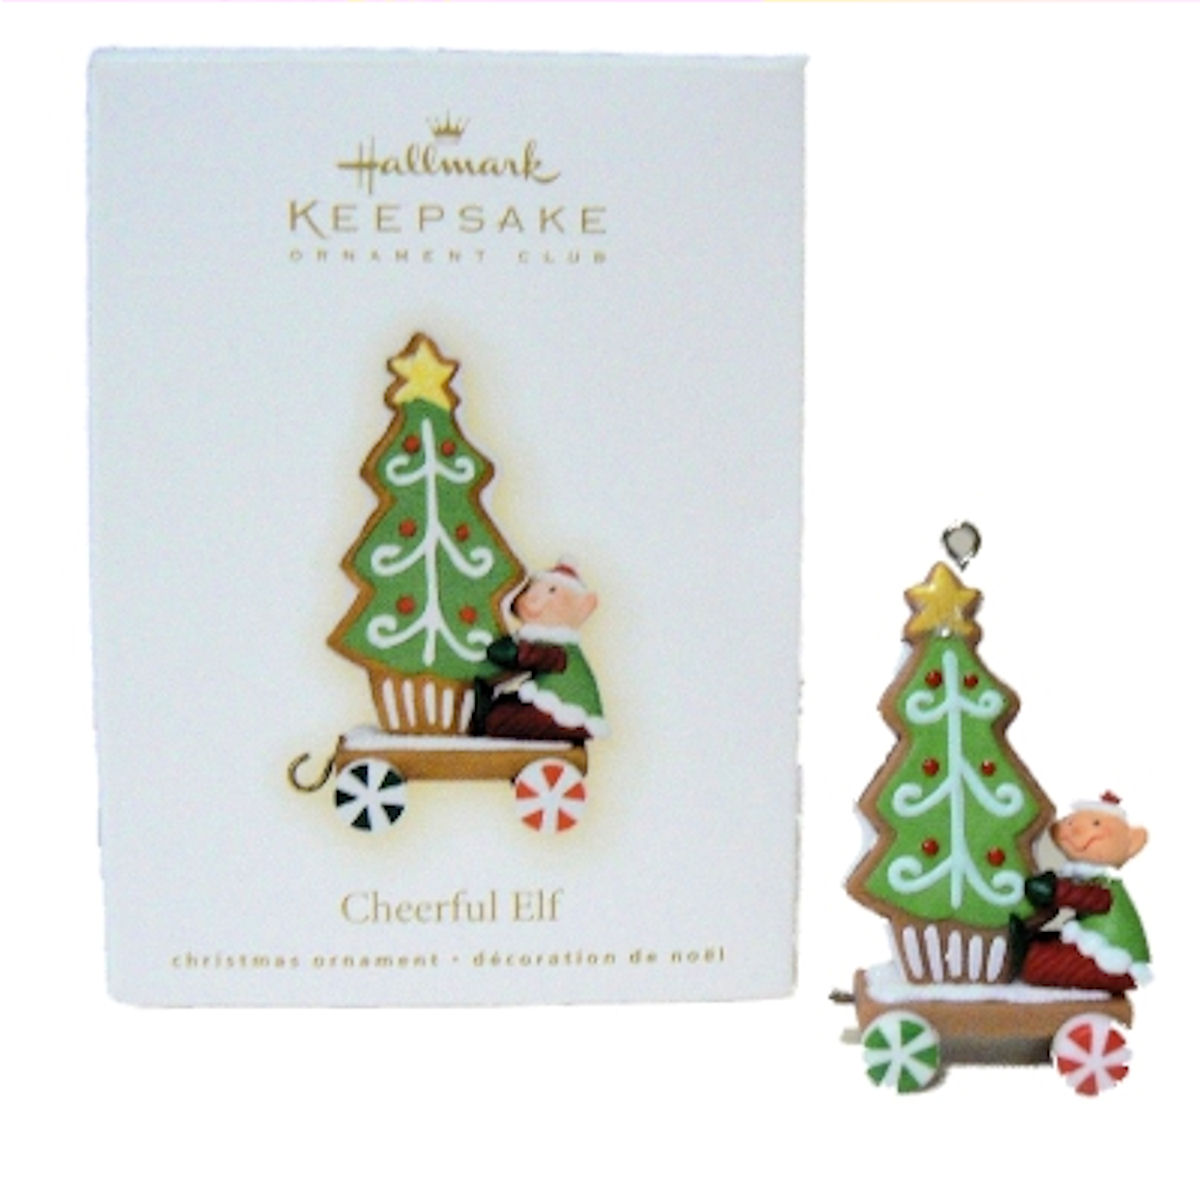 Hallmark Ornament 2009 Cheerful Elf and Cookie